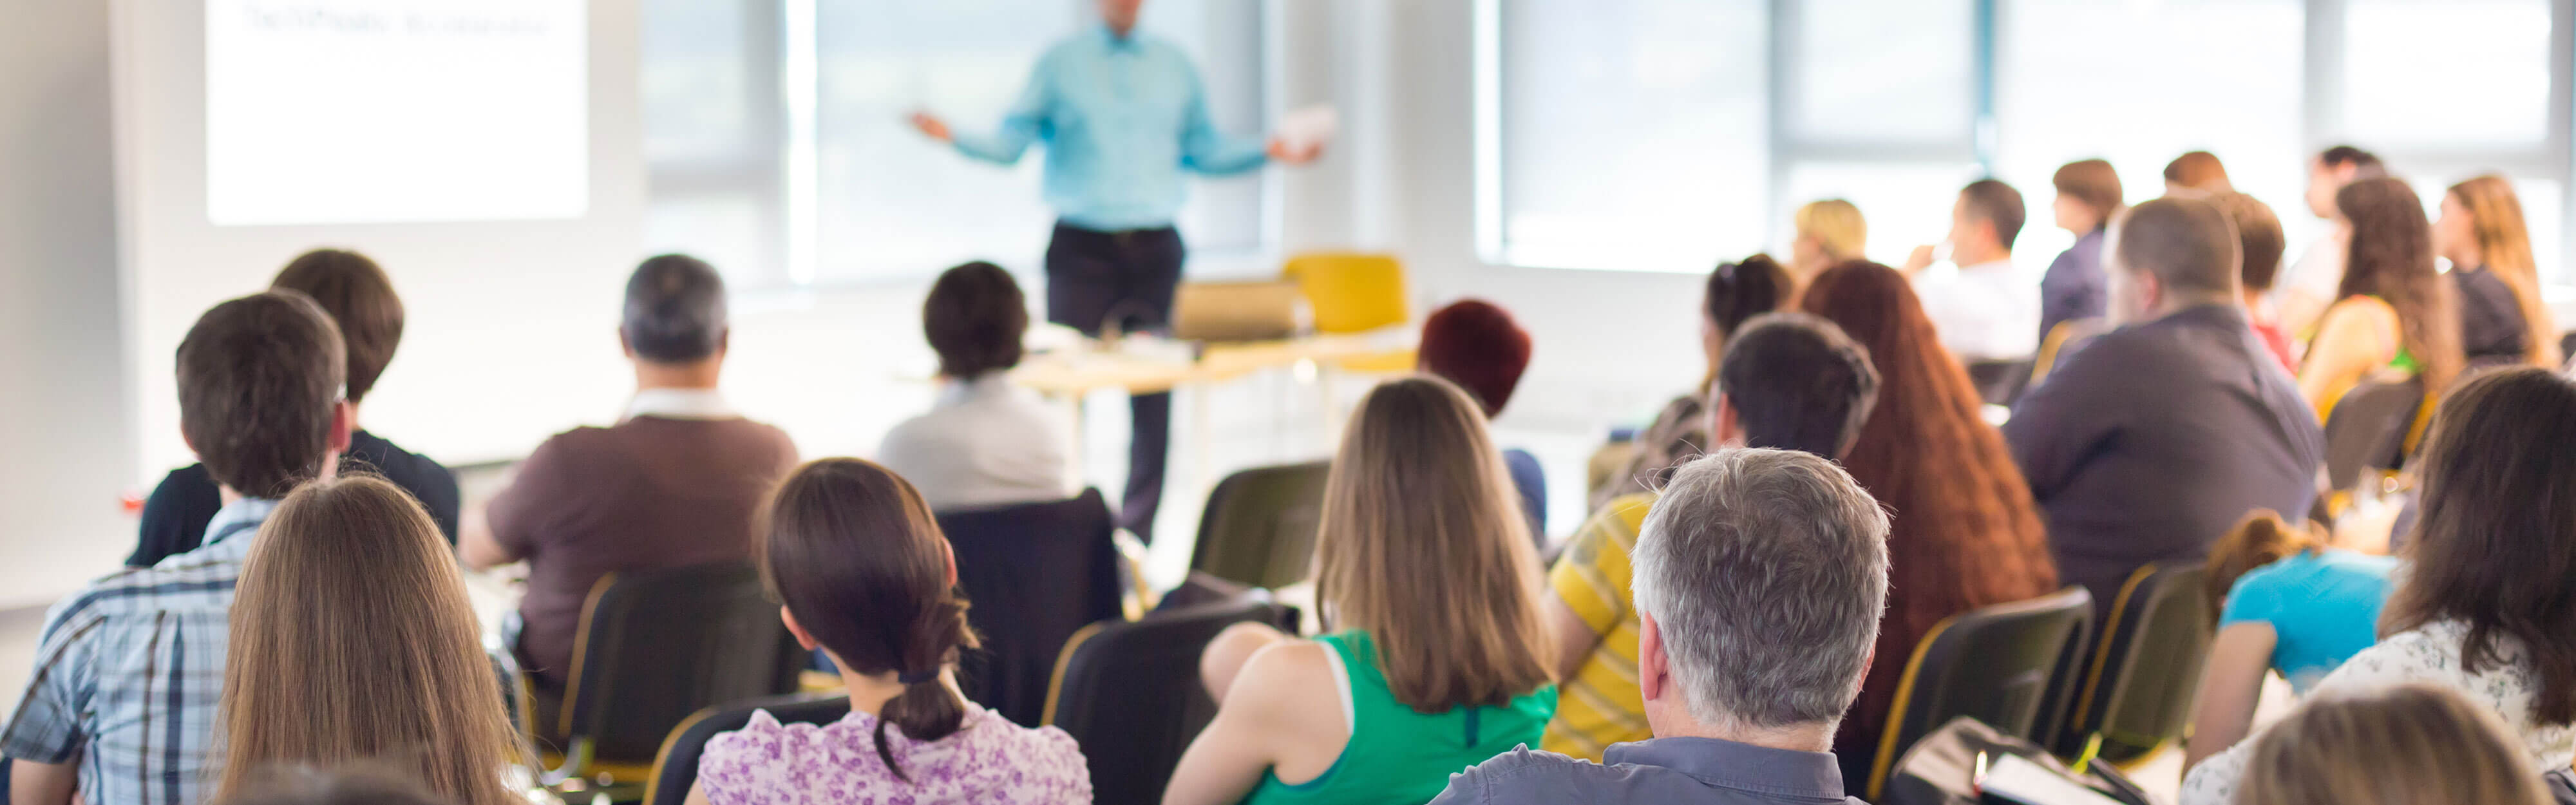 Talent Engagement and Development at Hexaware